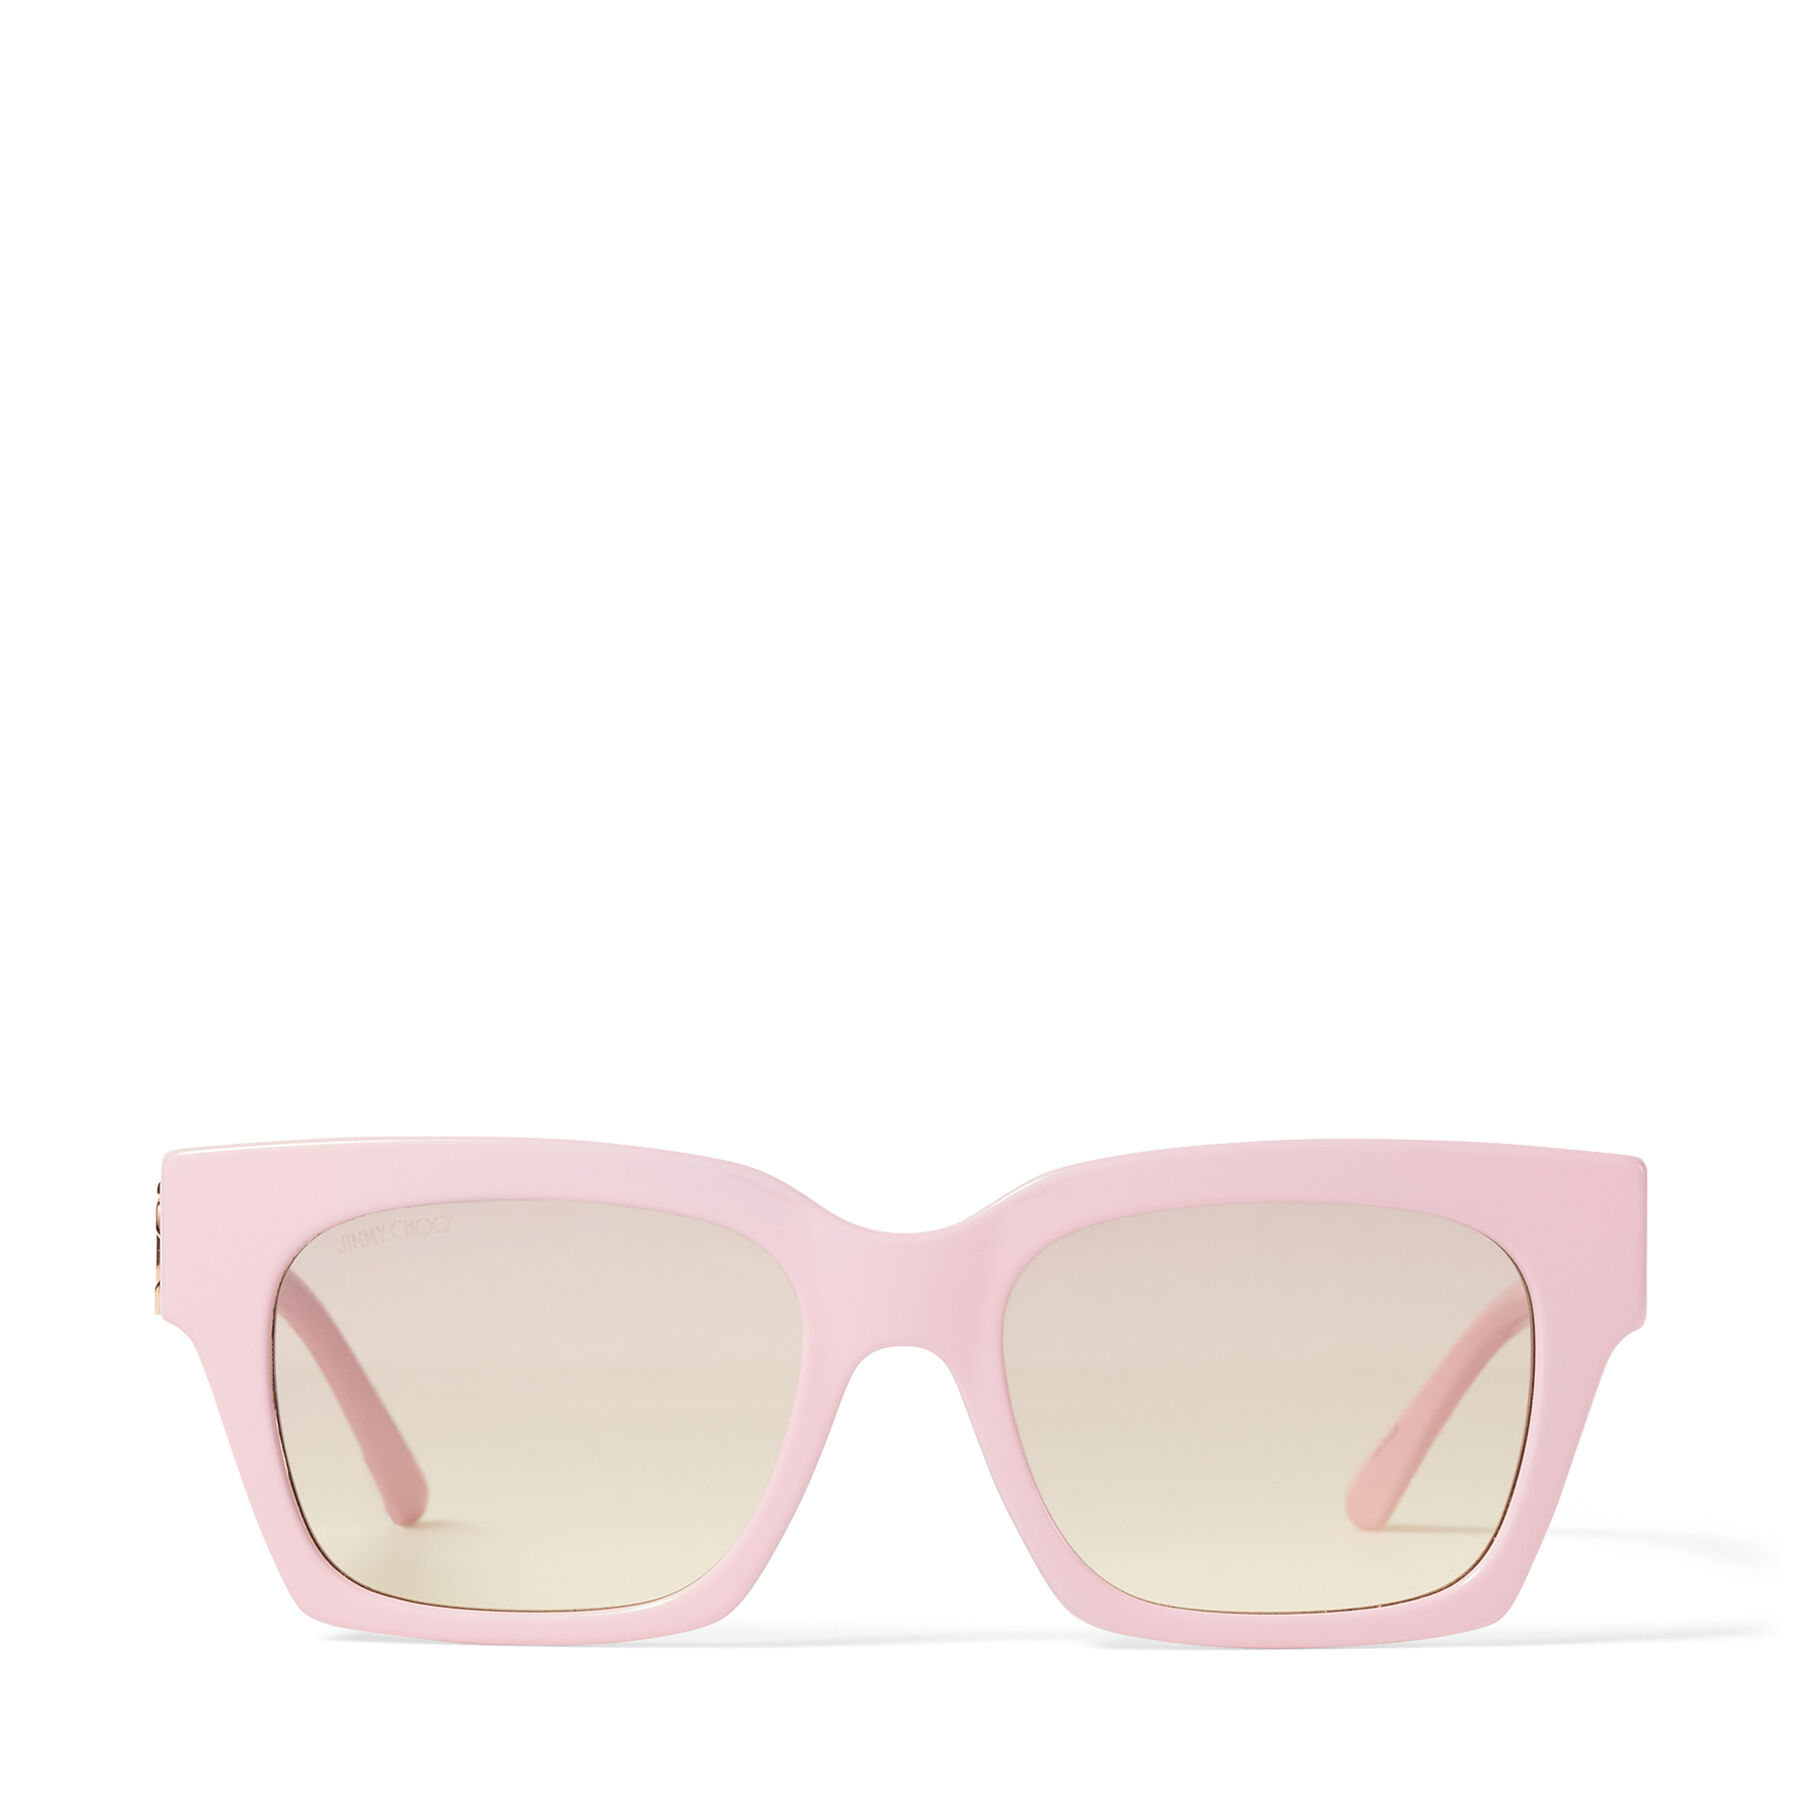 JO - Pink Acetate Square-Eye Sunglasses with Gold JC Logo